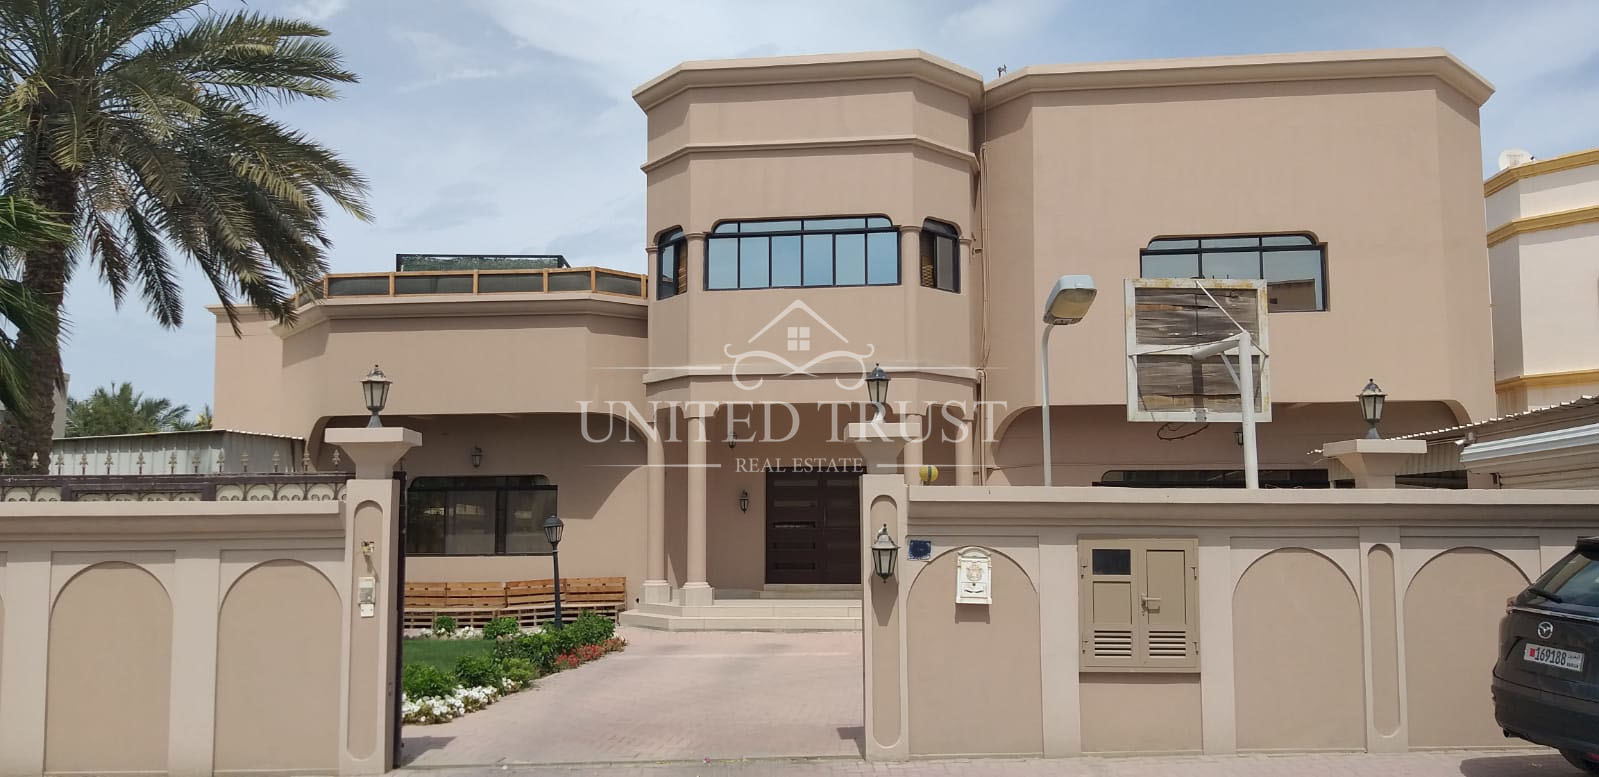 For sale  villa in Jerdab,prime location Ref: JUR-AB-012